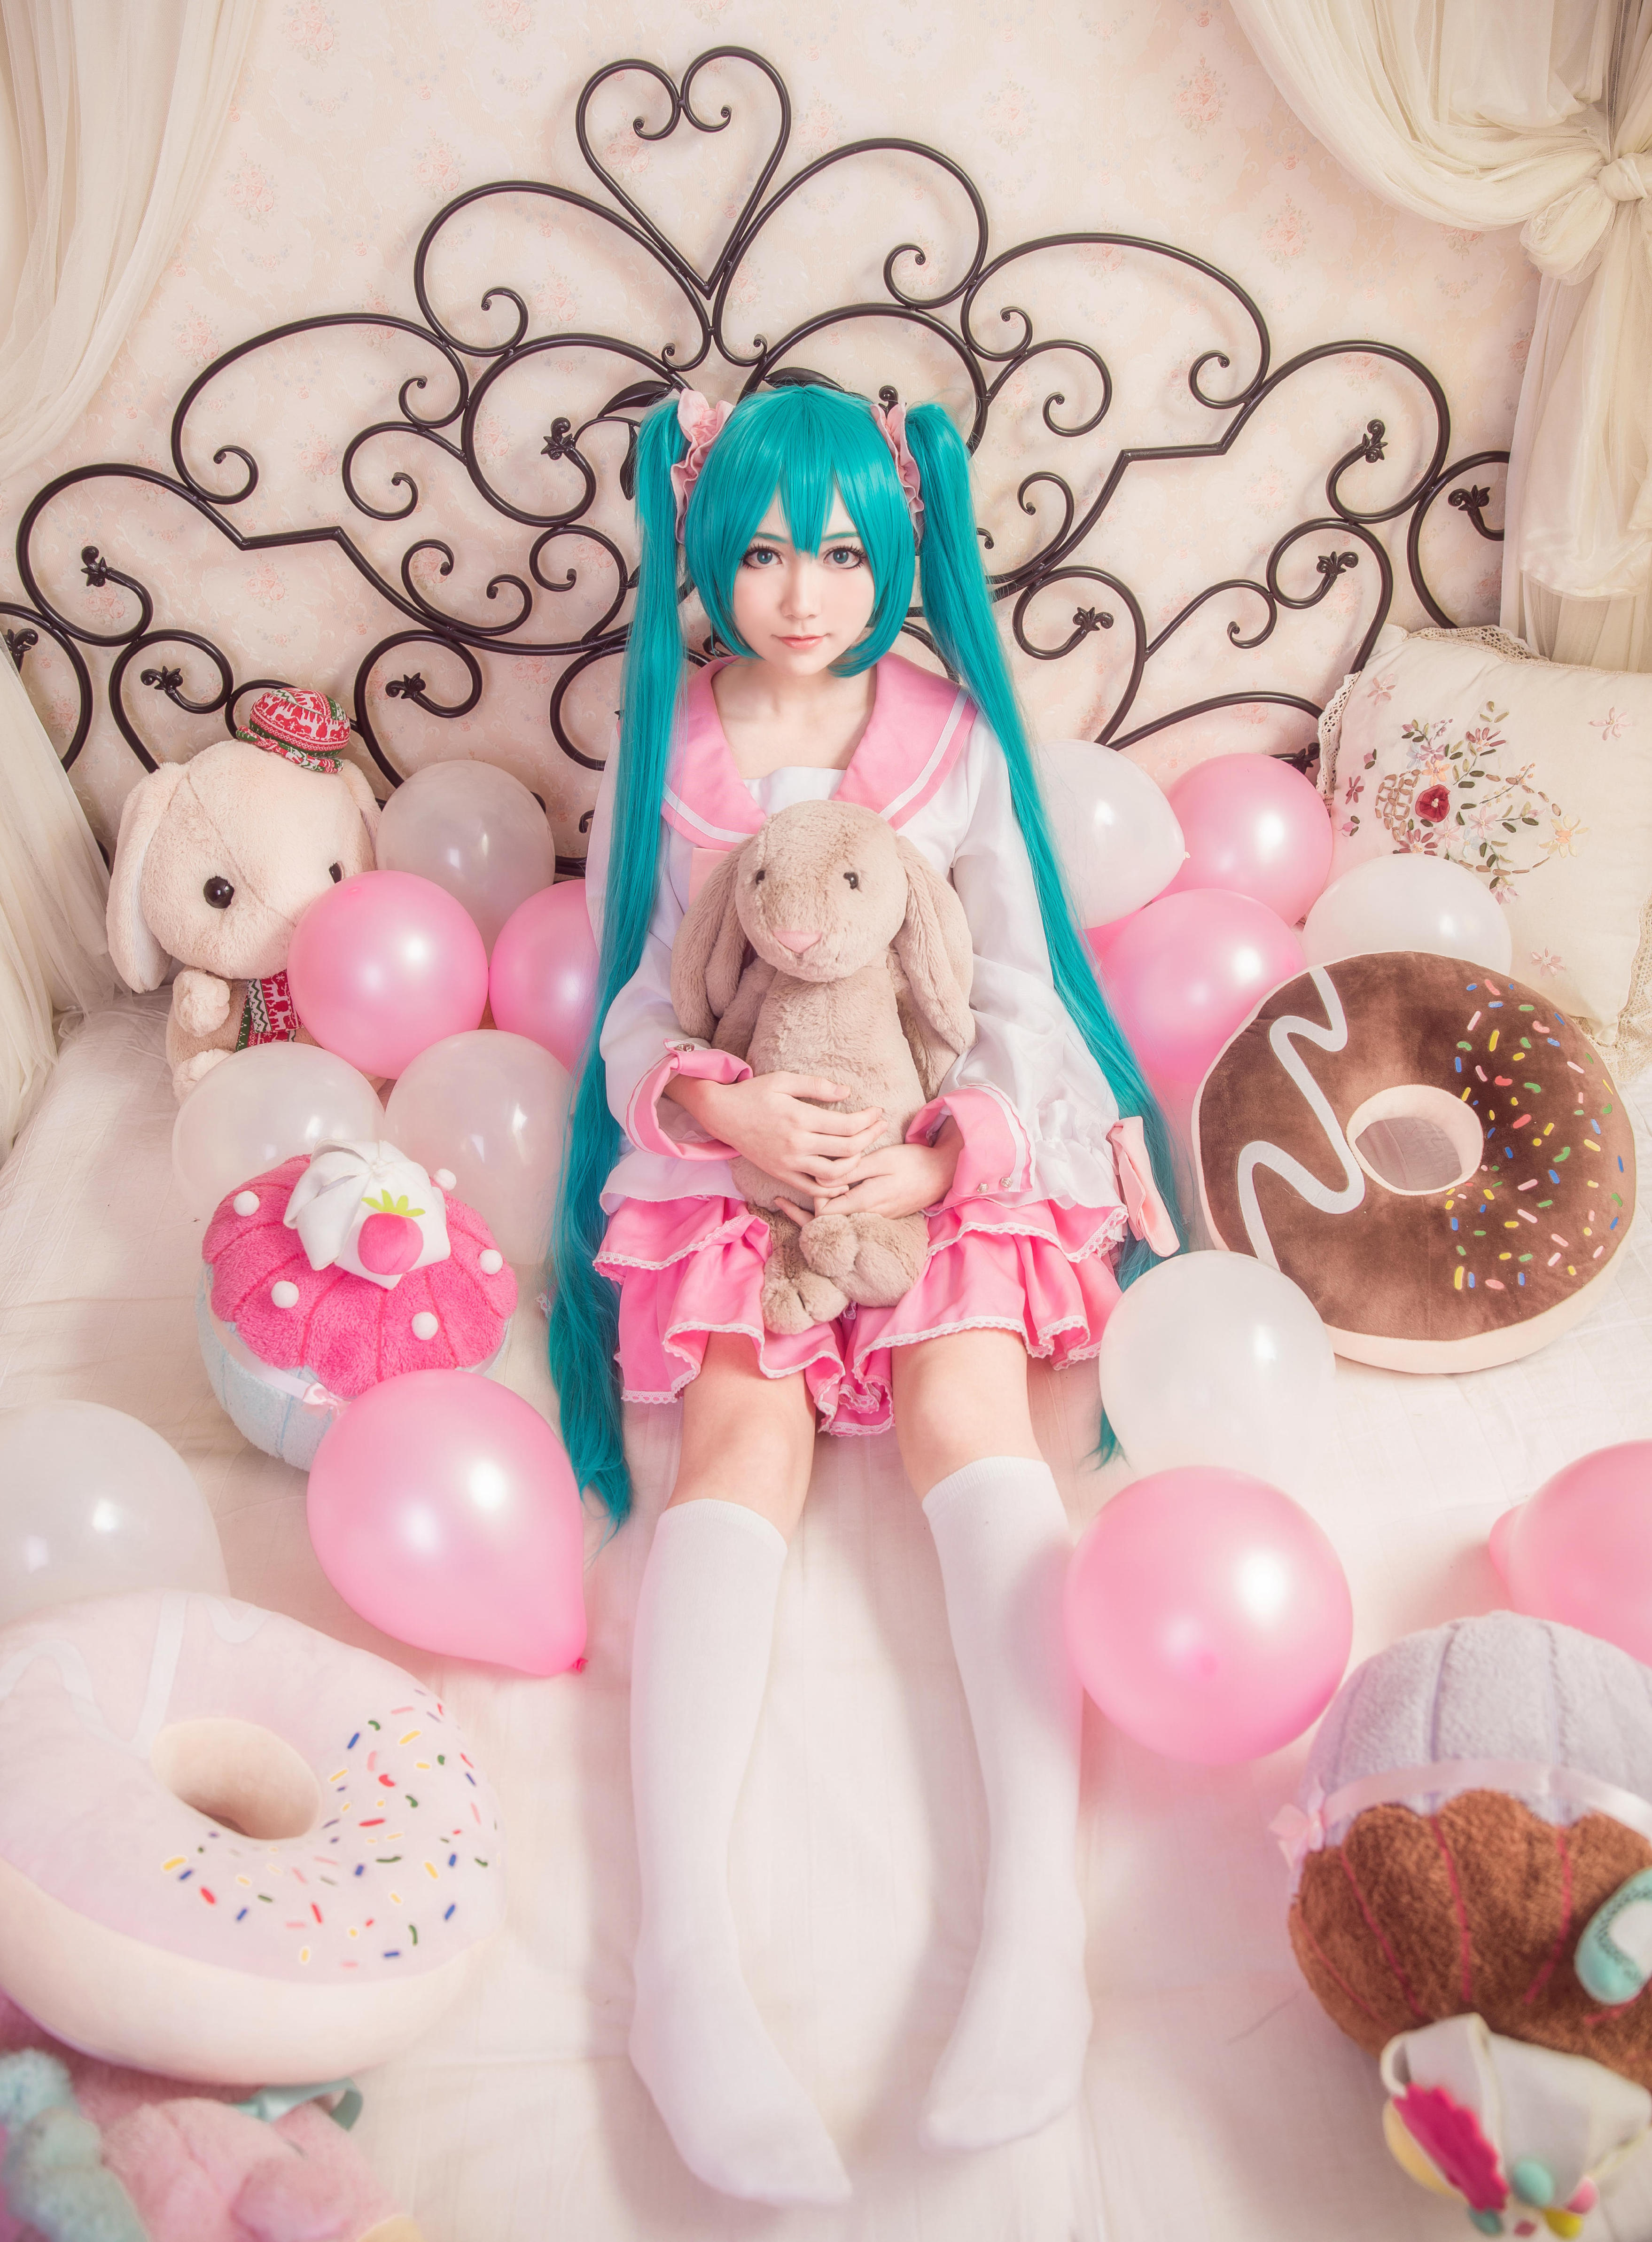 【Cosplay】VOCALOID 白丝